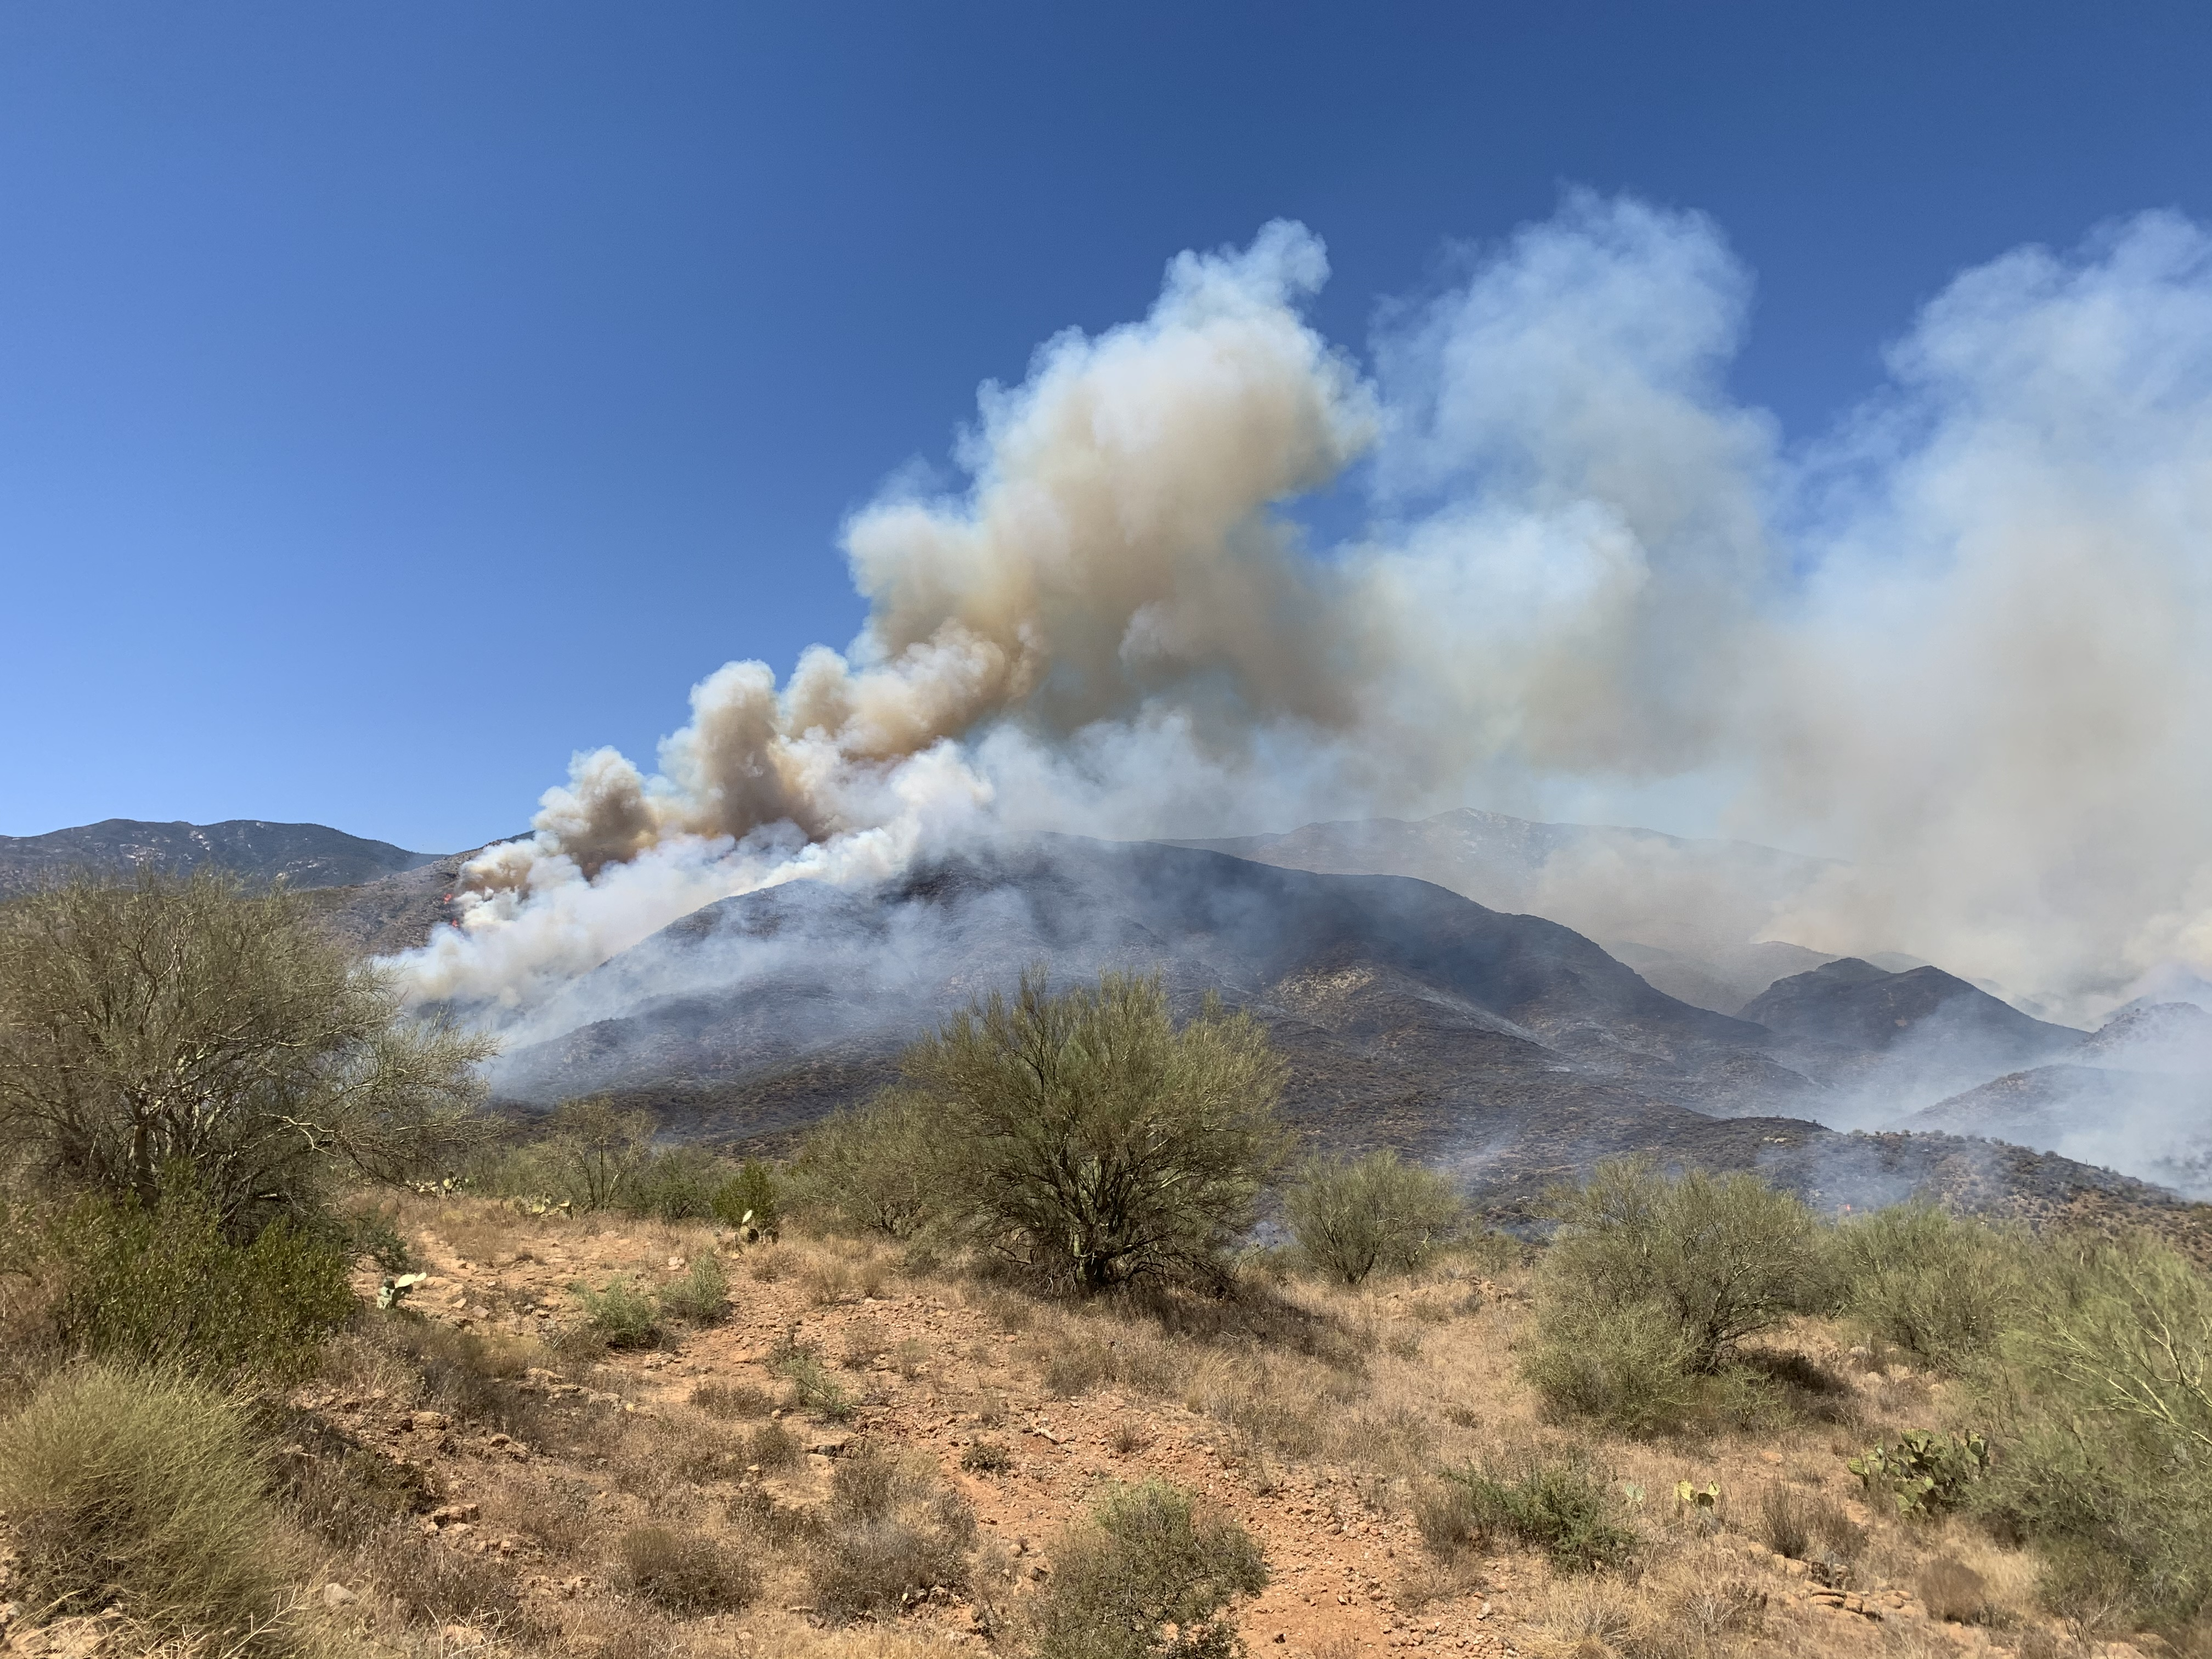 Fire on Bumblebee Road growing fast; not threatening, evacuations not necessary